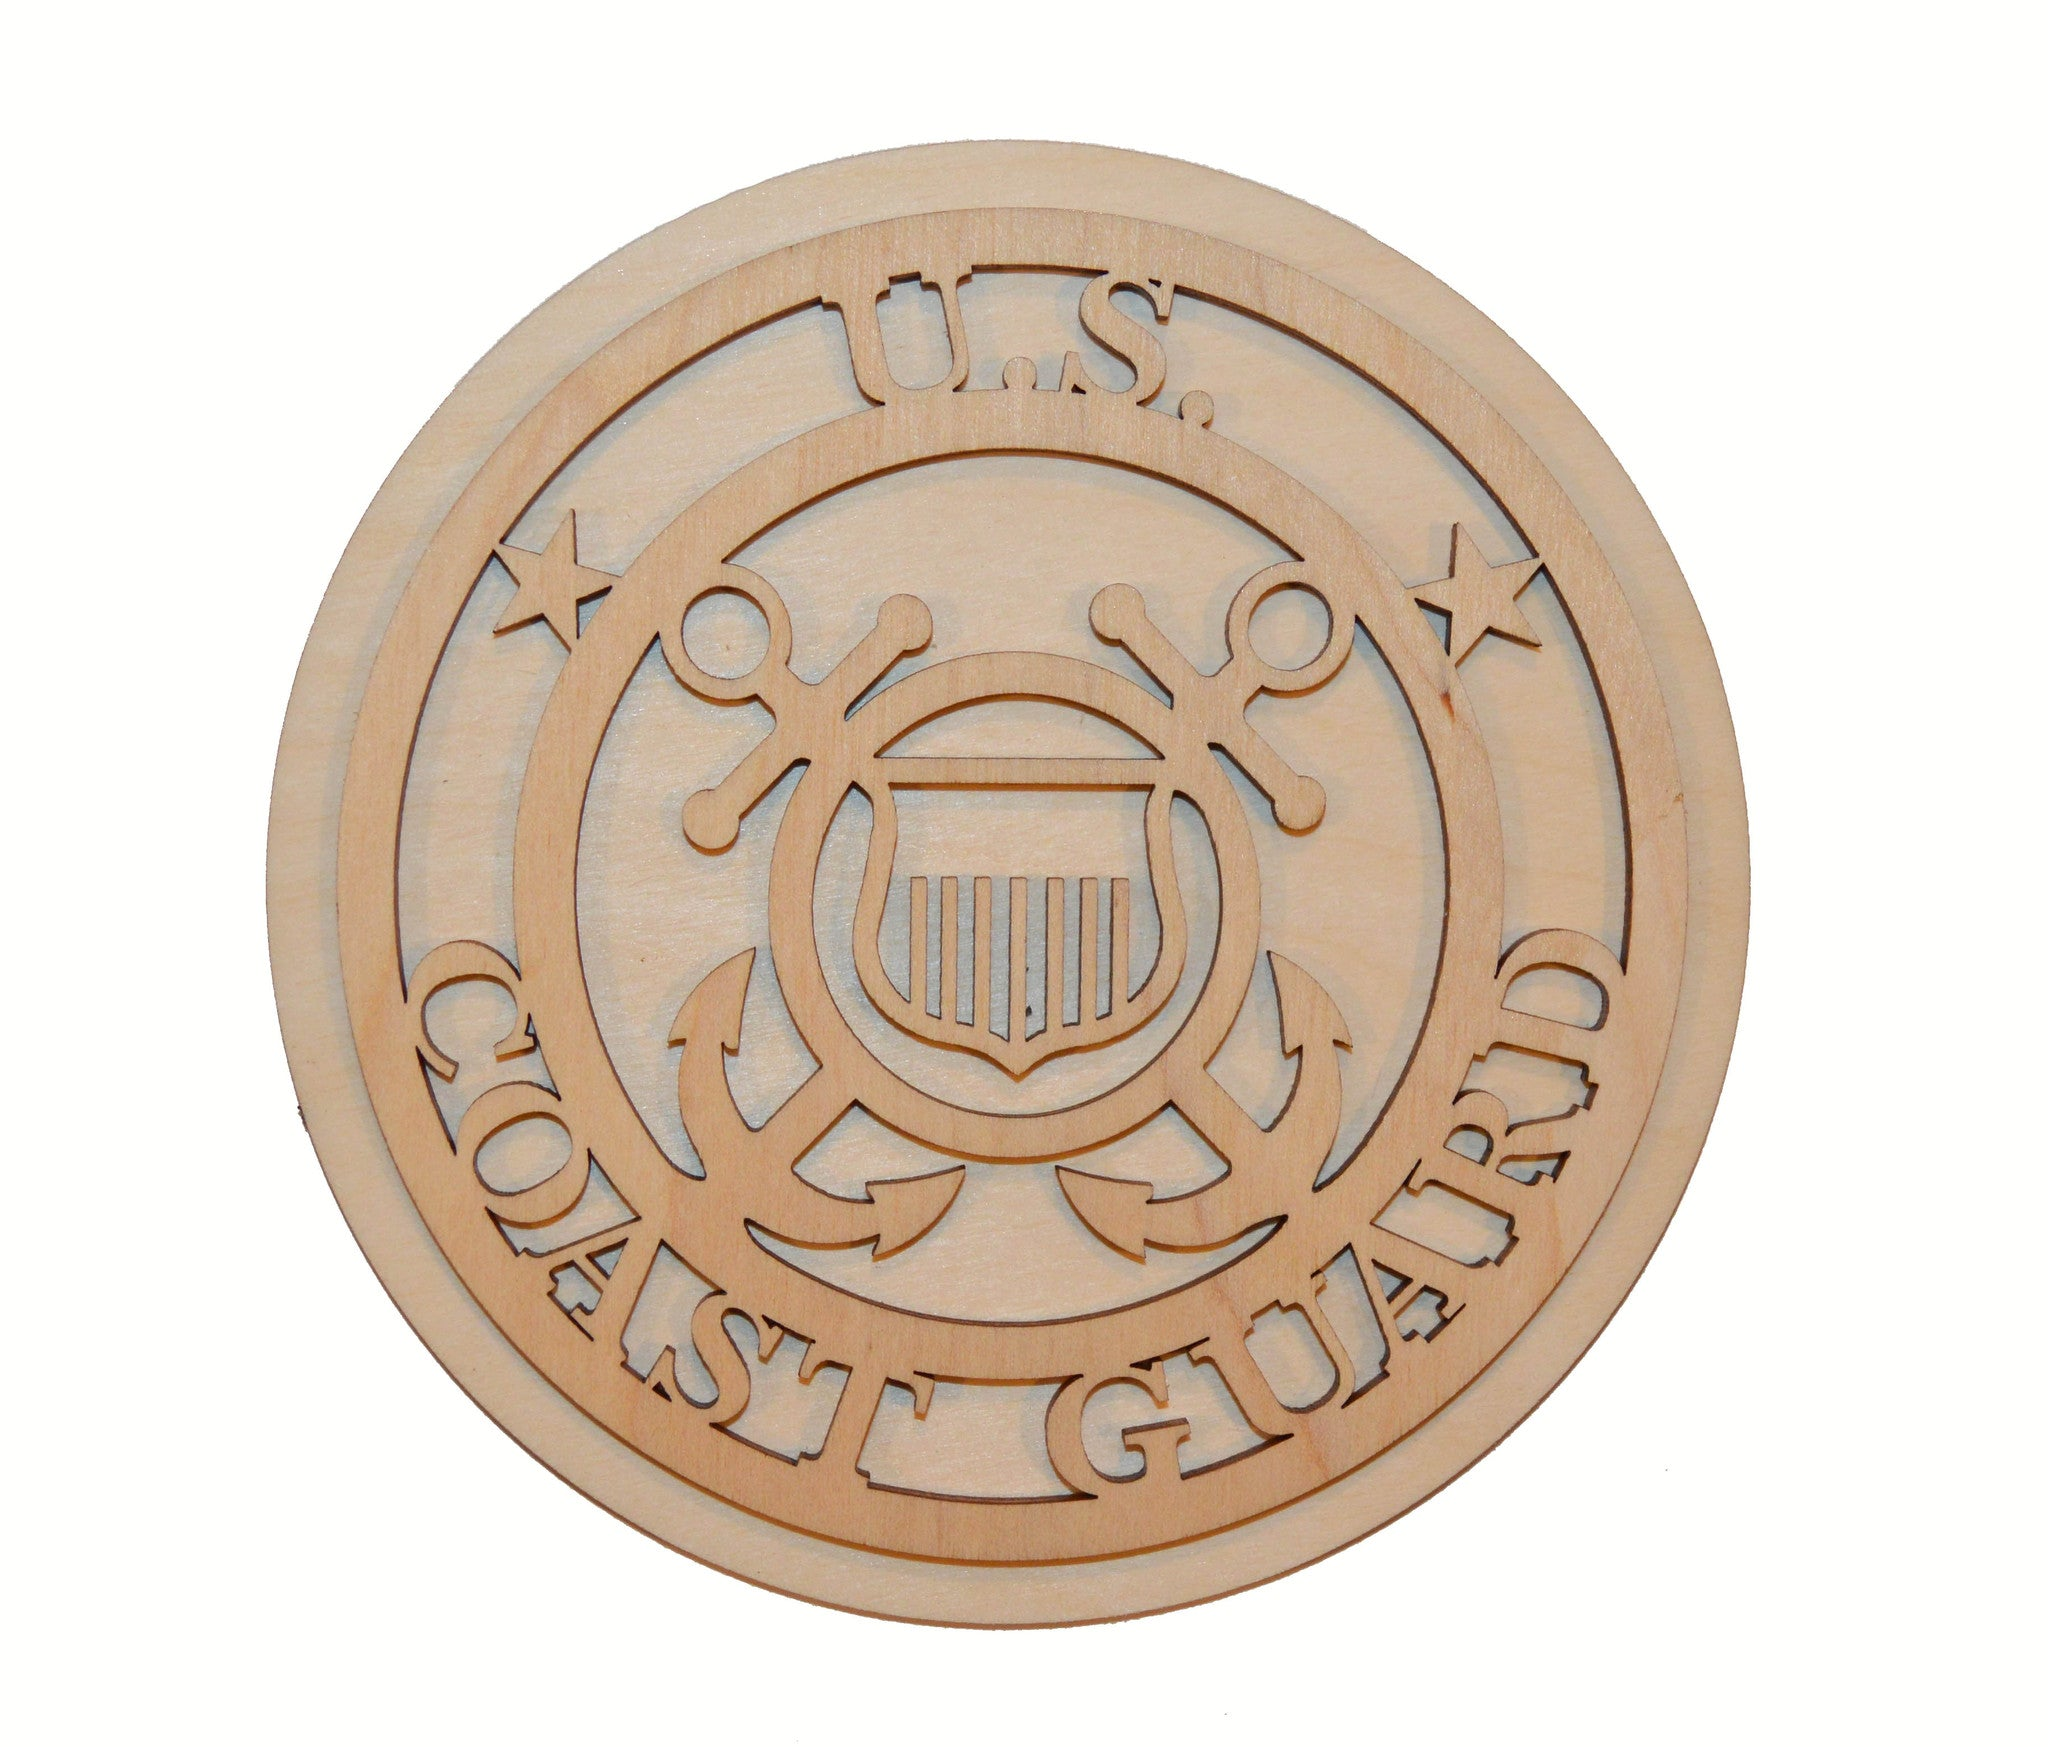 U.S. Coast Guard Badge Unfinished Wood Cut Out Part # USCG